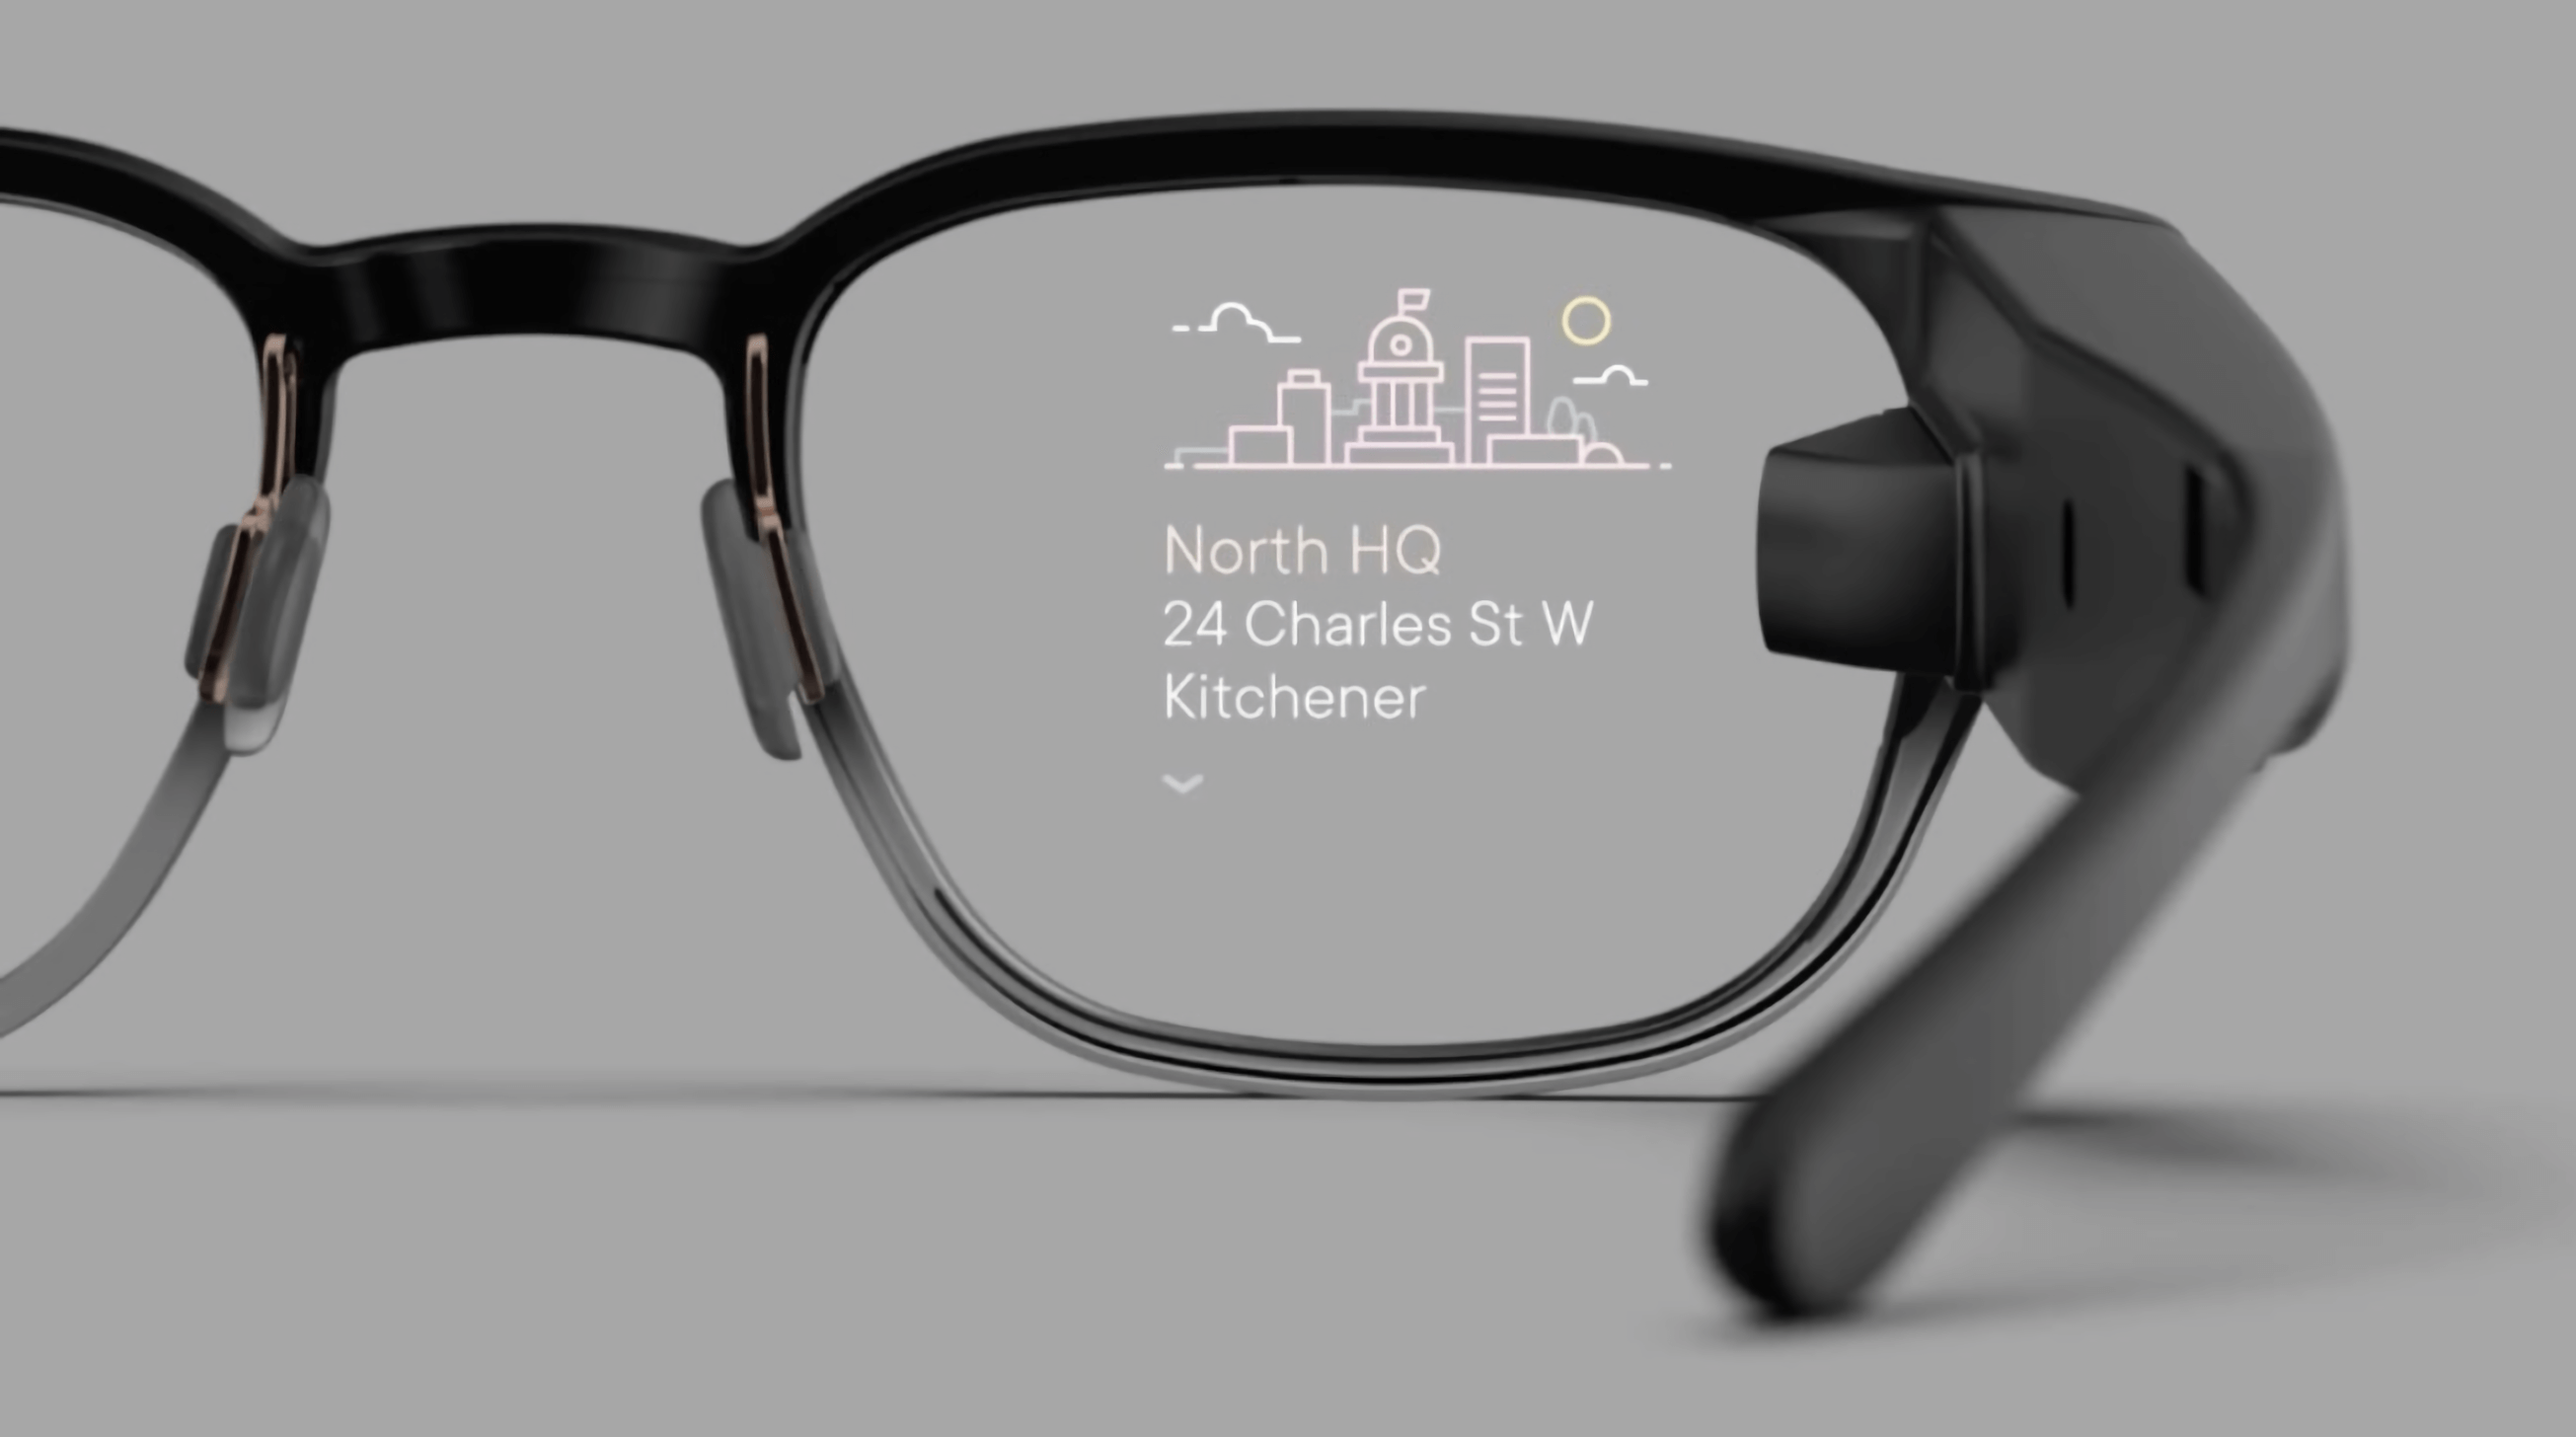 Google acquires North, maker of the Focals smart glasses